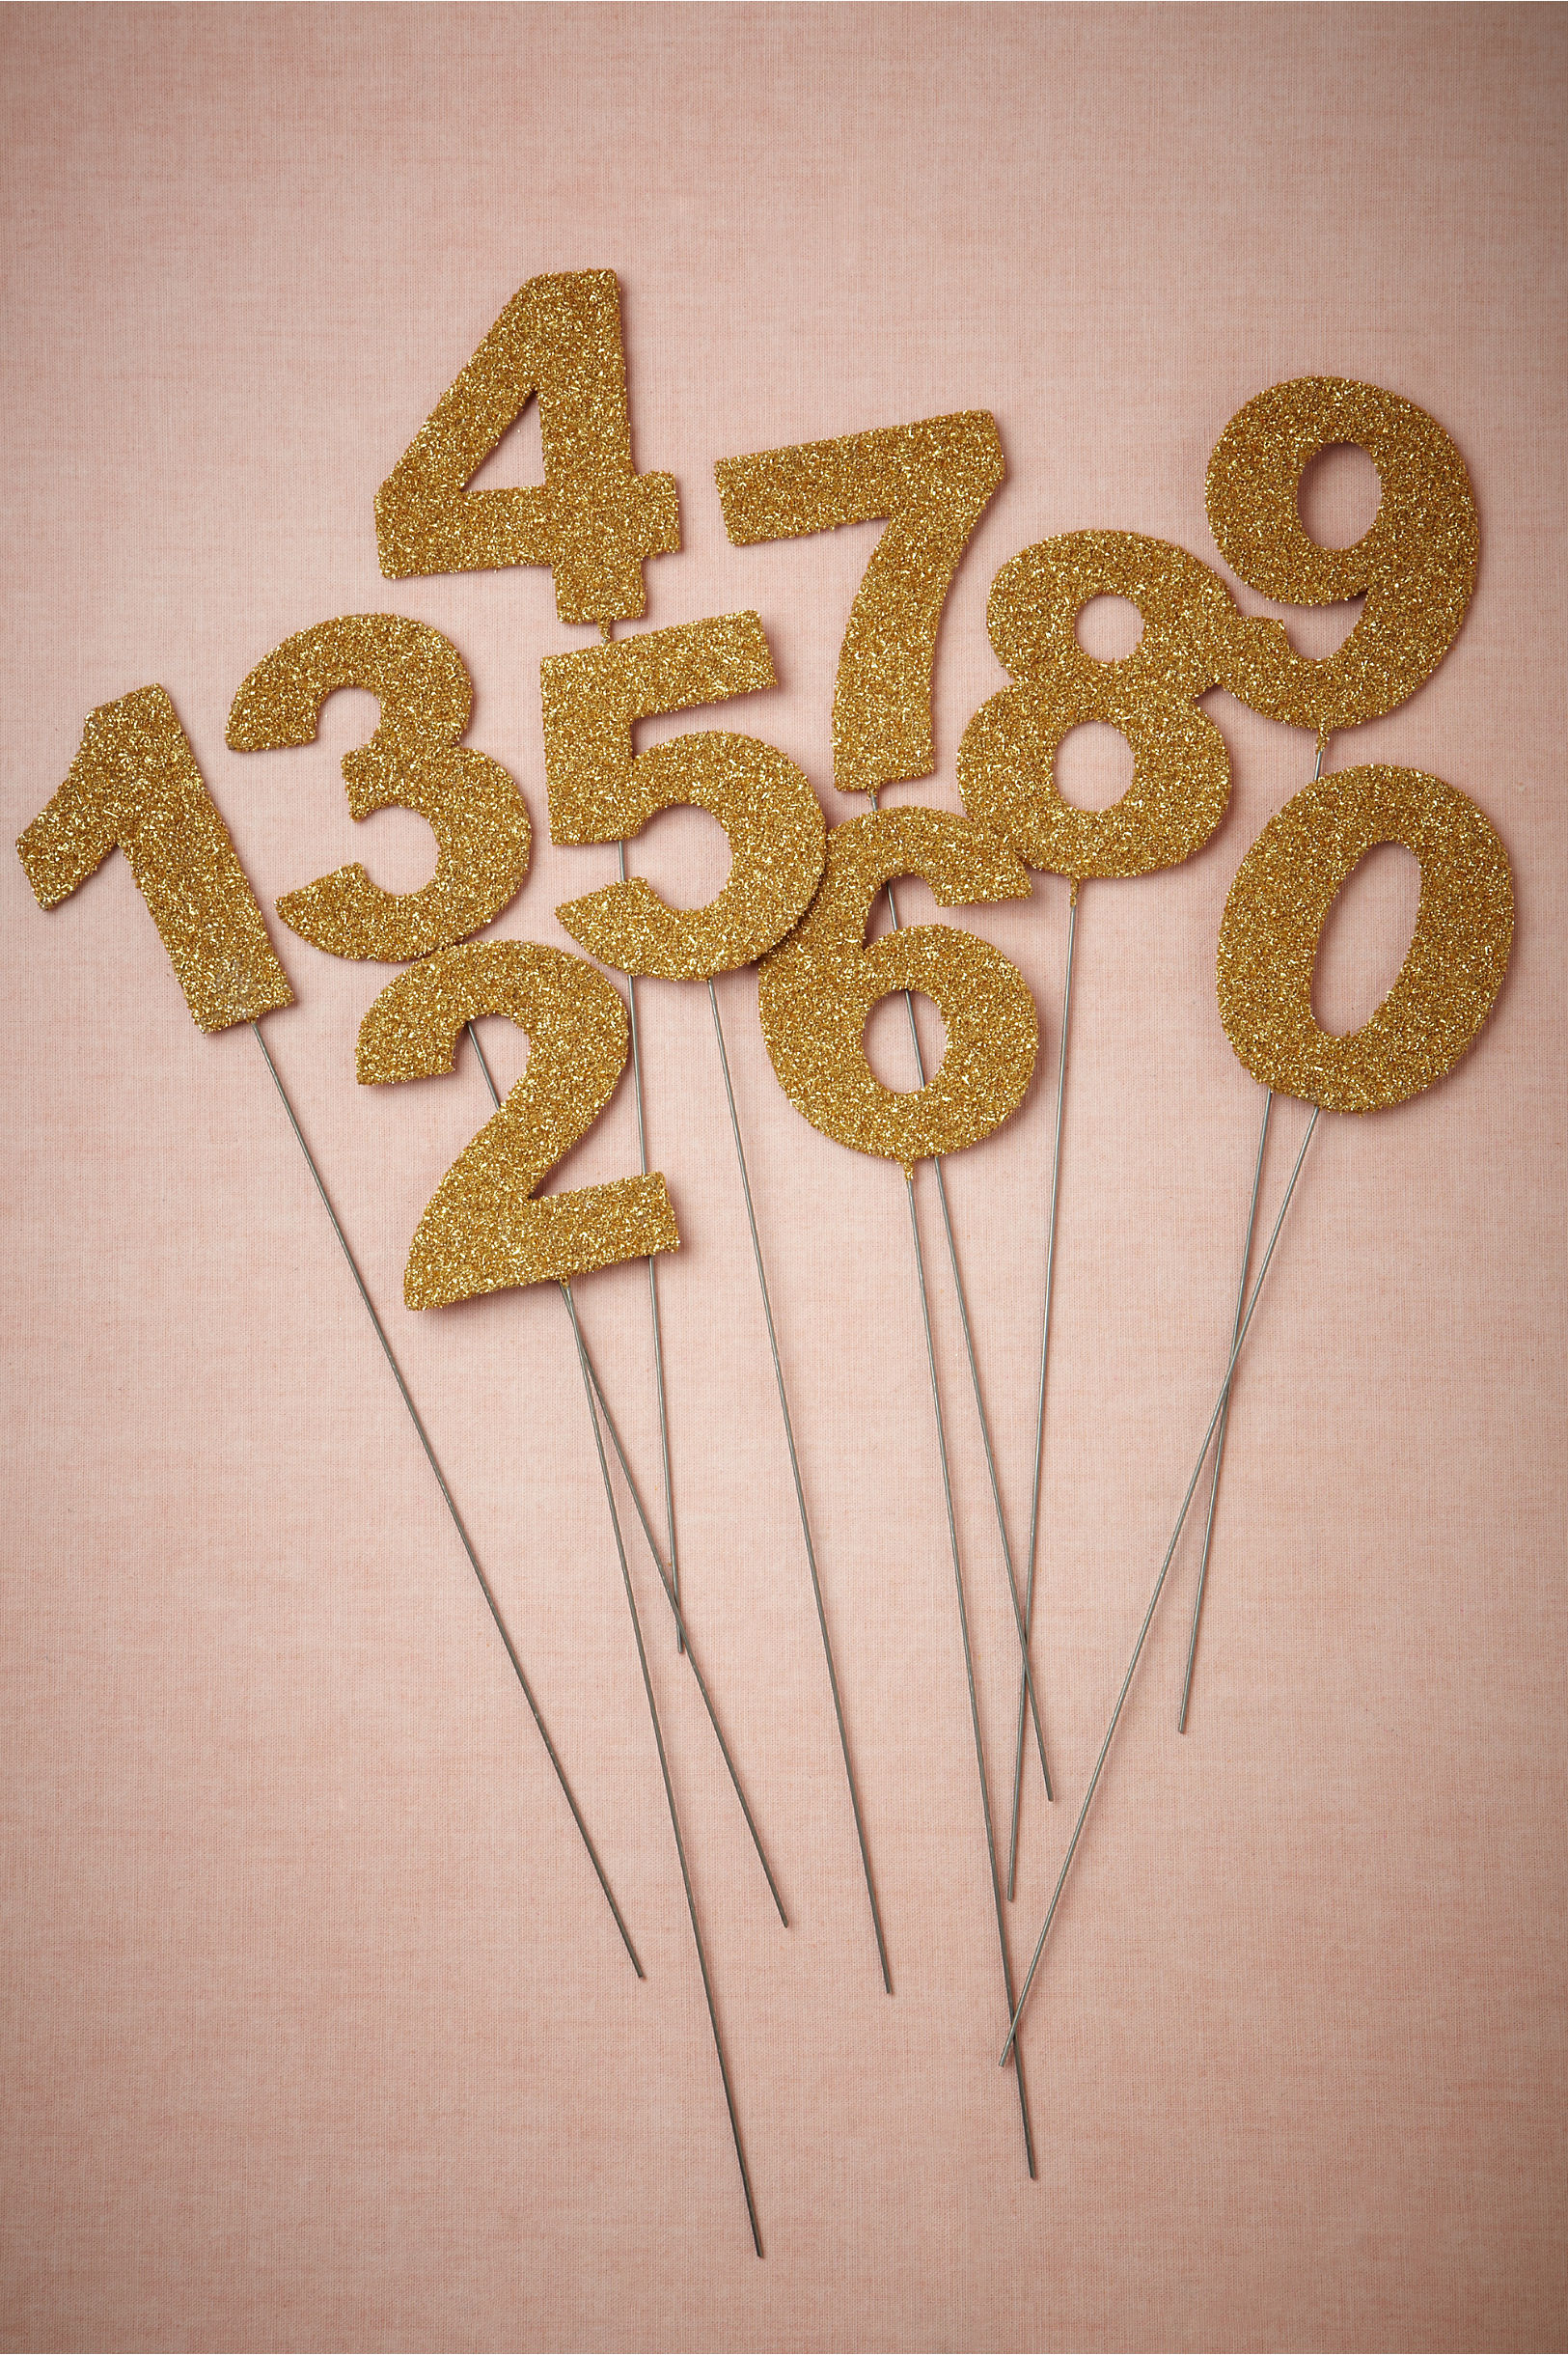 Wendy Addison Gold Glittered Number Stakes Bhldn